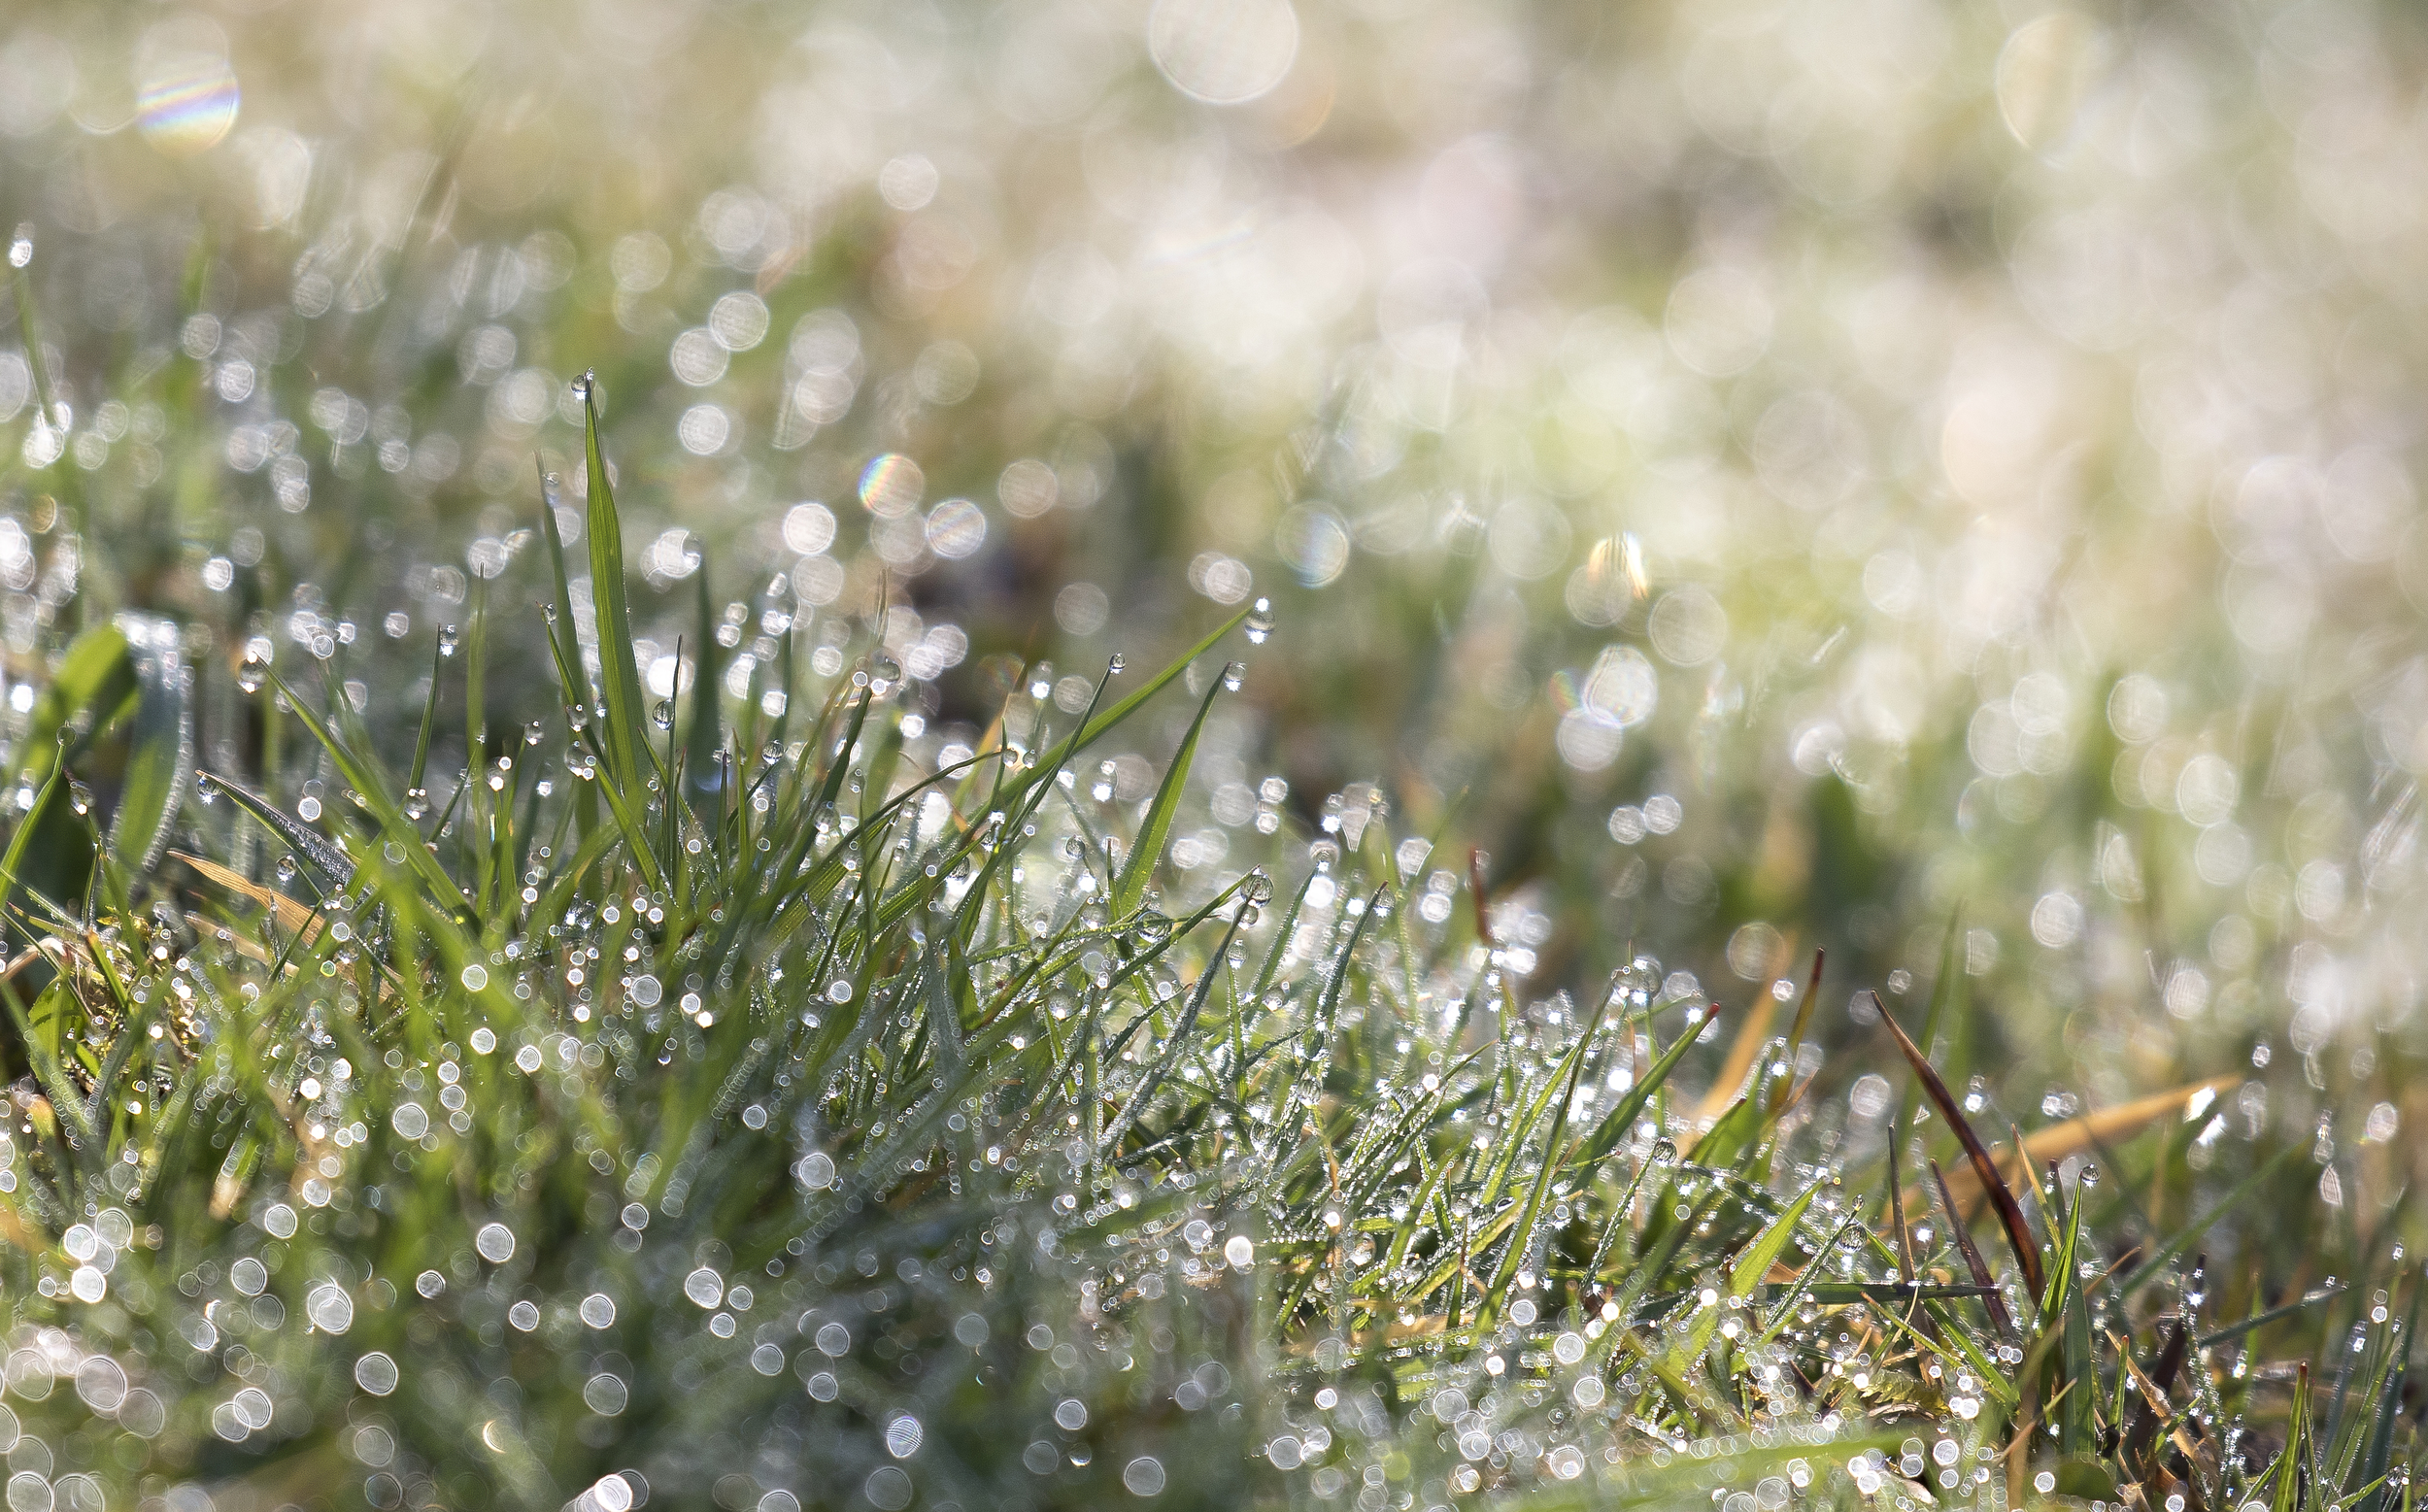 Grass Dew 20th March.jpg